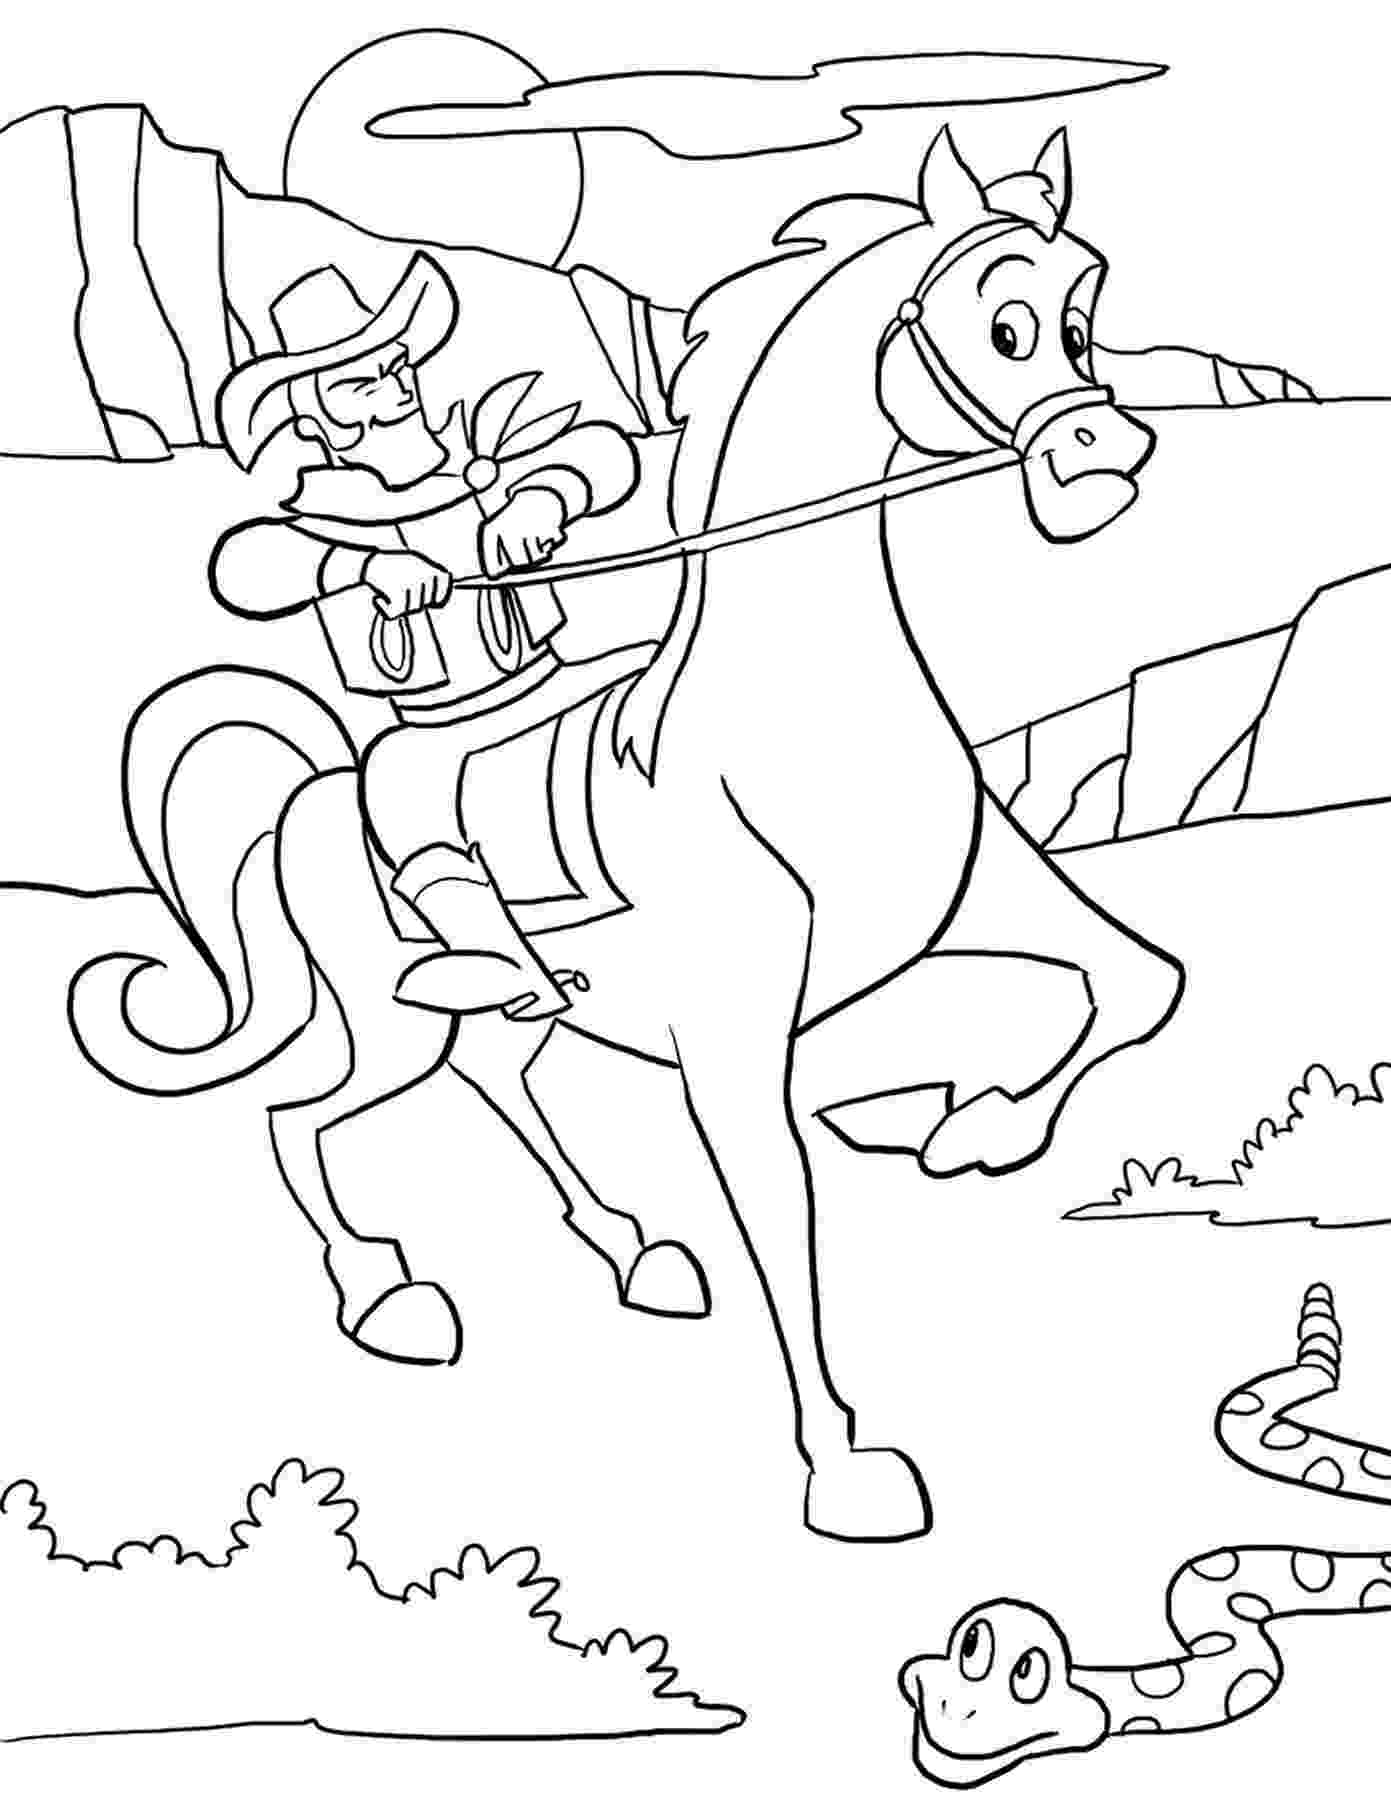 cowboy coloring pages free printable cowboy coloring pages for kids cowboy pages coloring